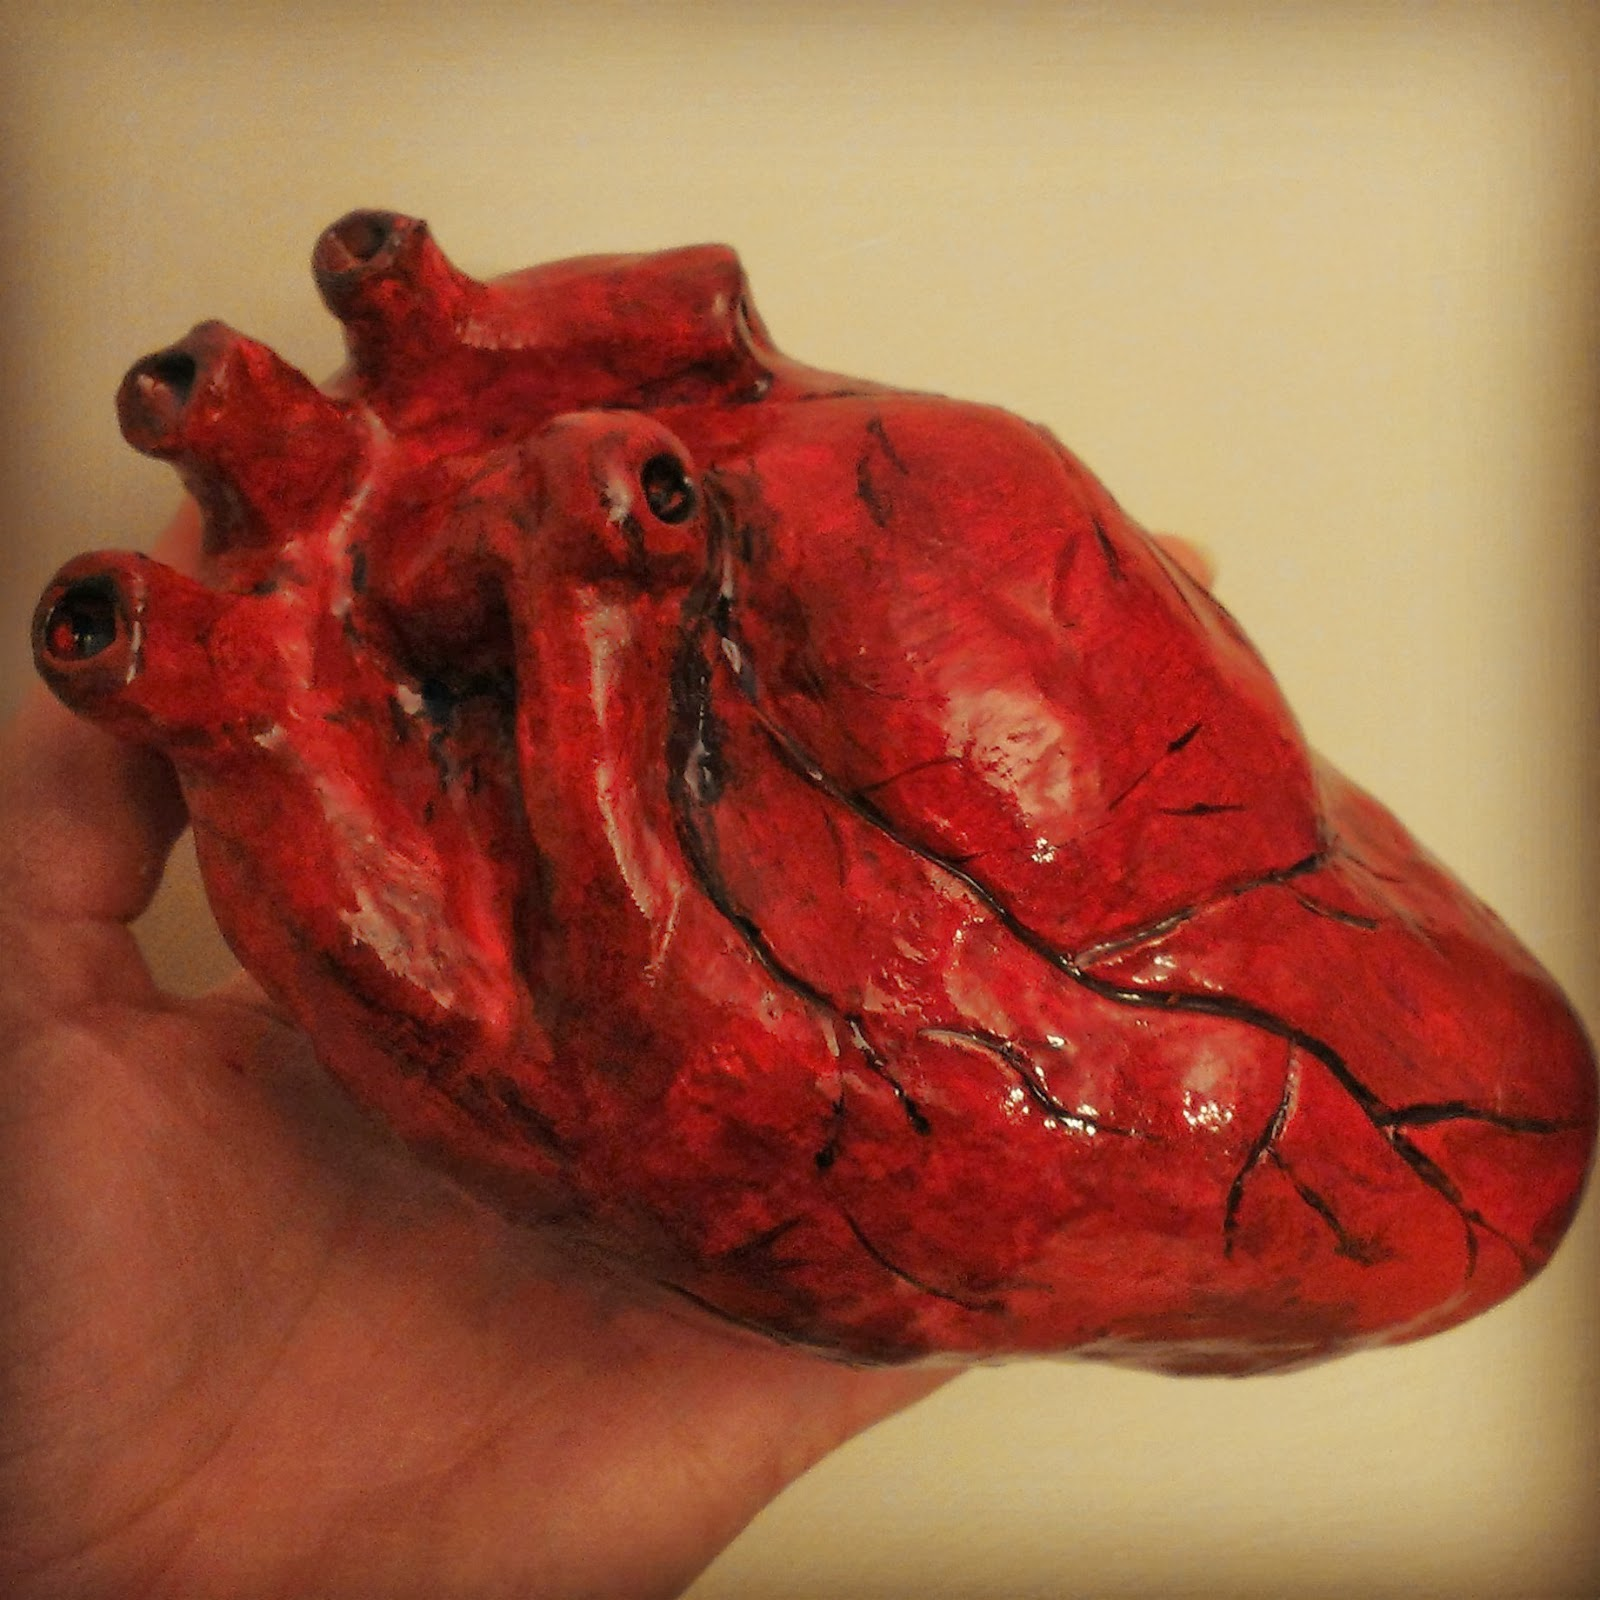 real human heart beating - photo #16